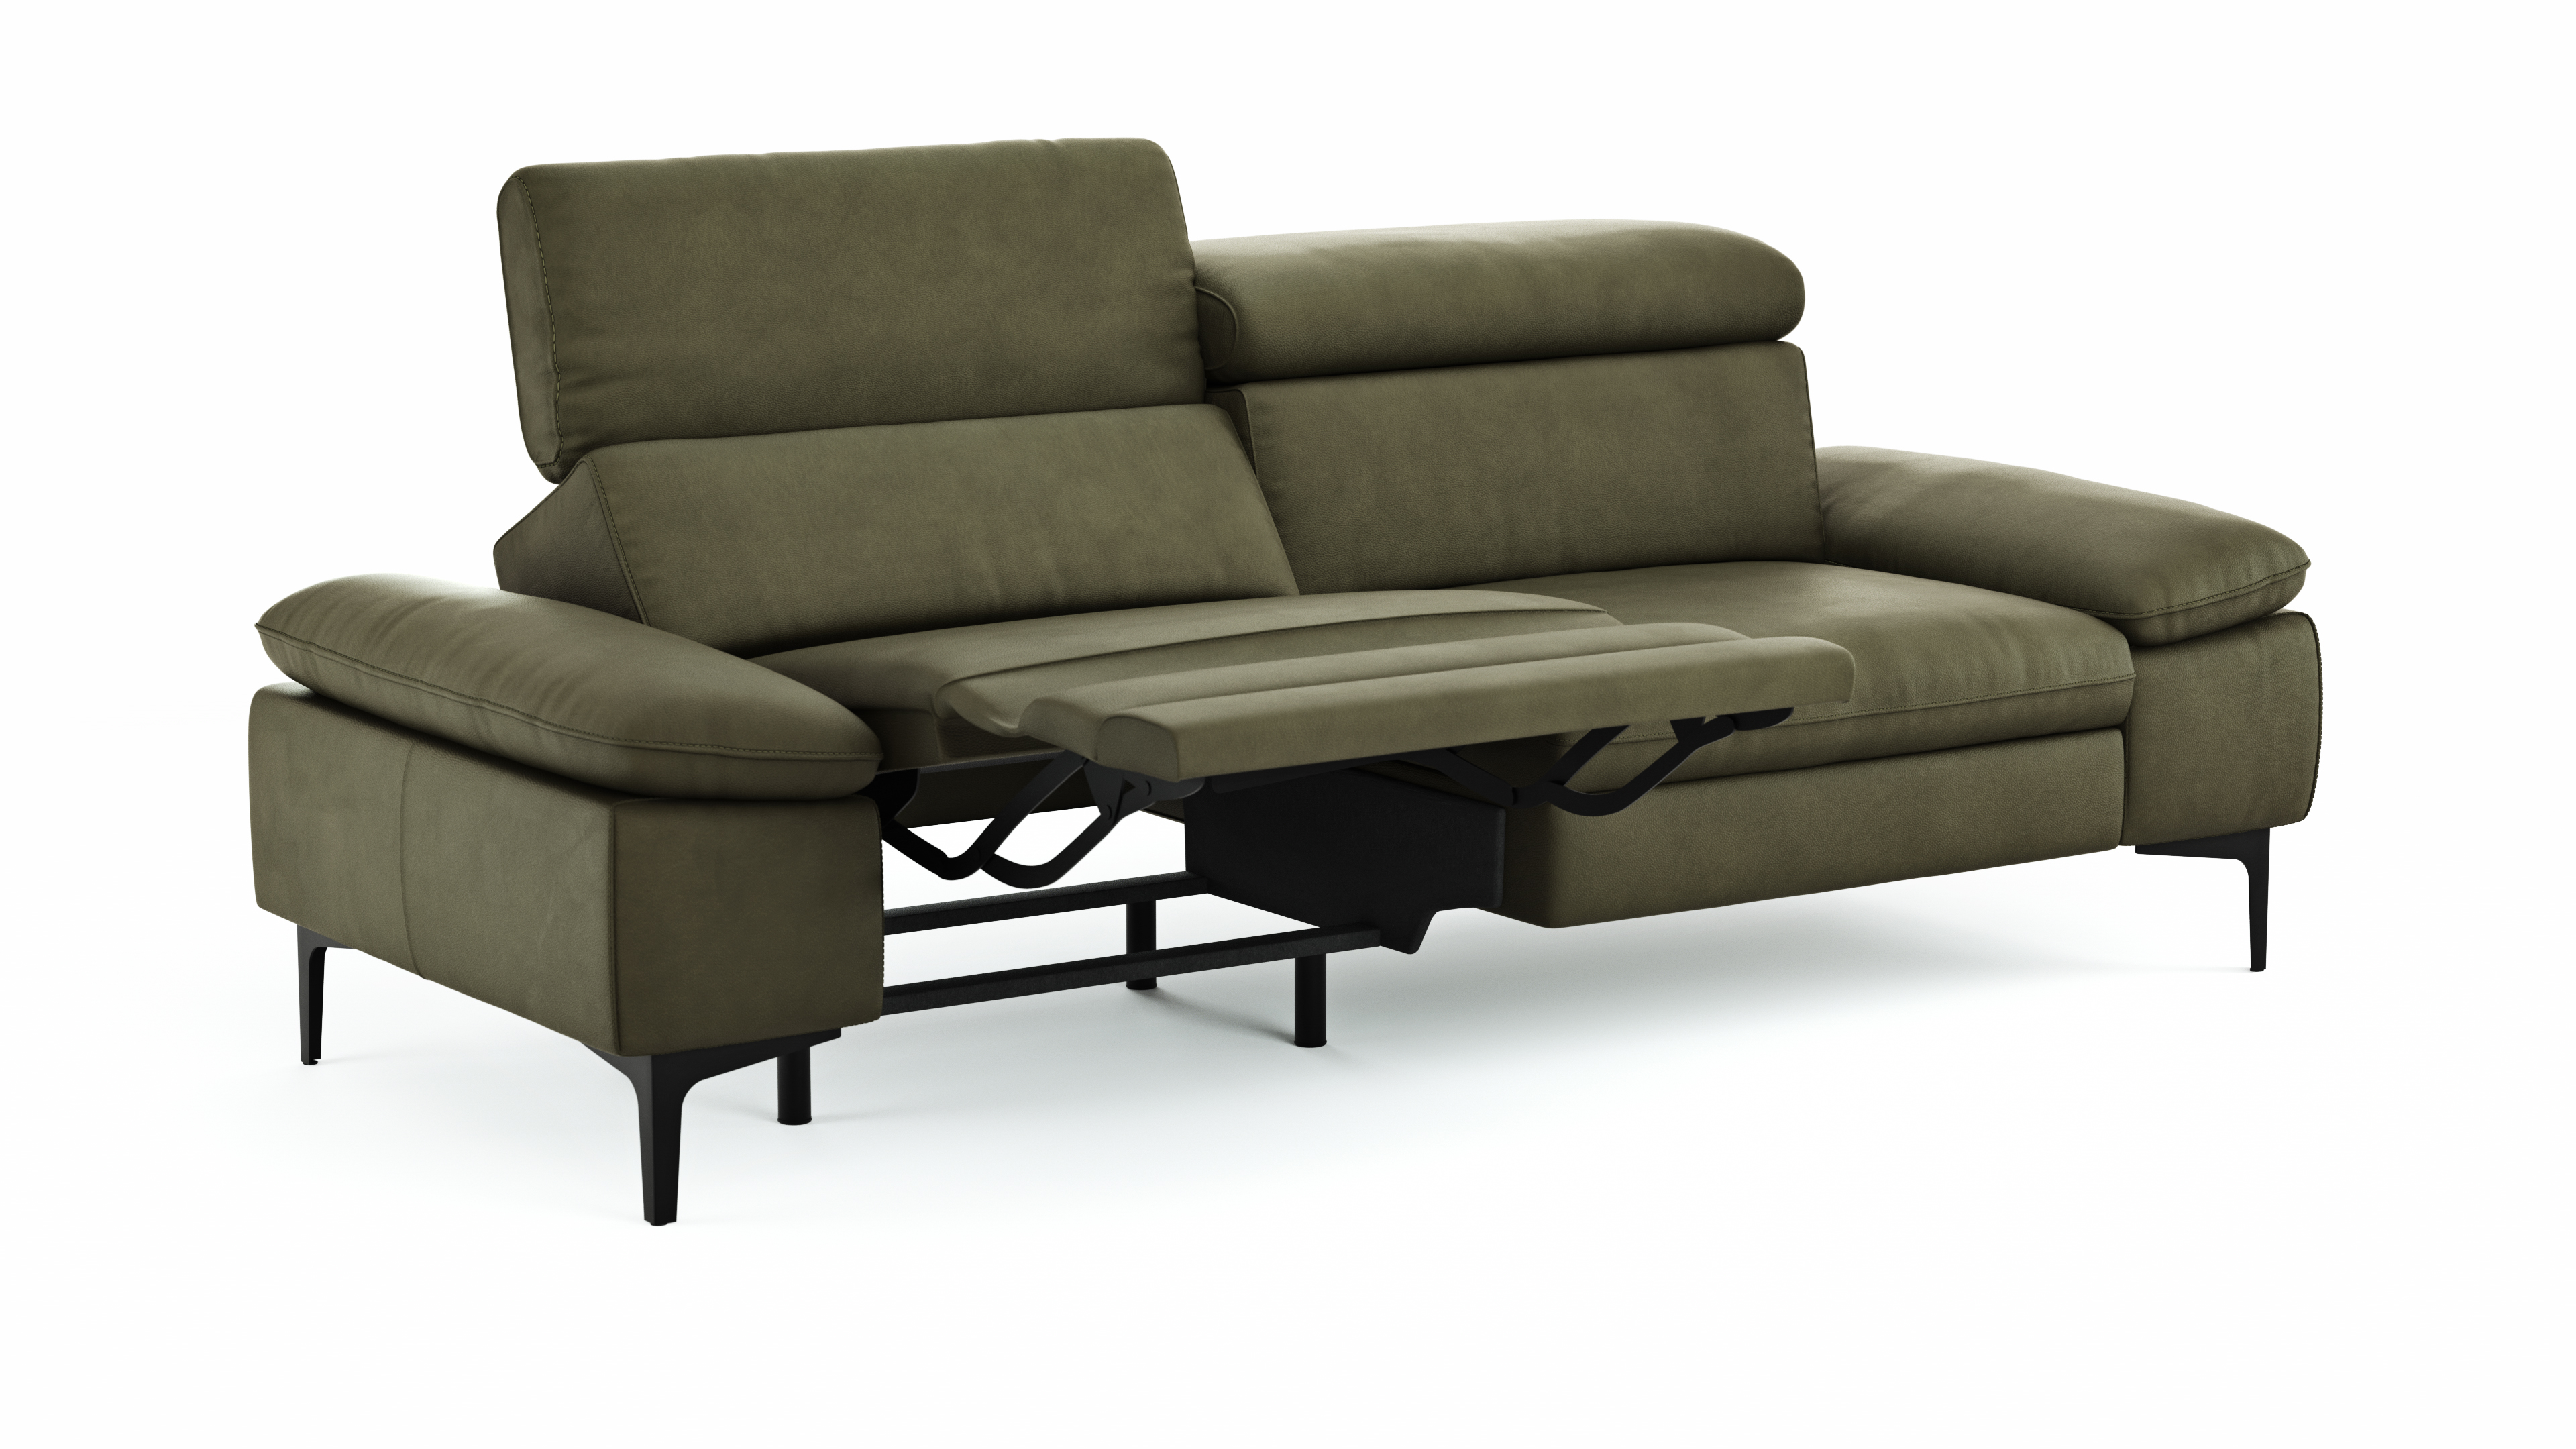 Global Family Sofa Felipa freisteller 4 105135 | Homepoet